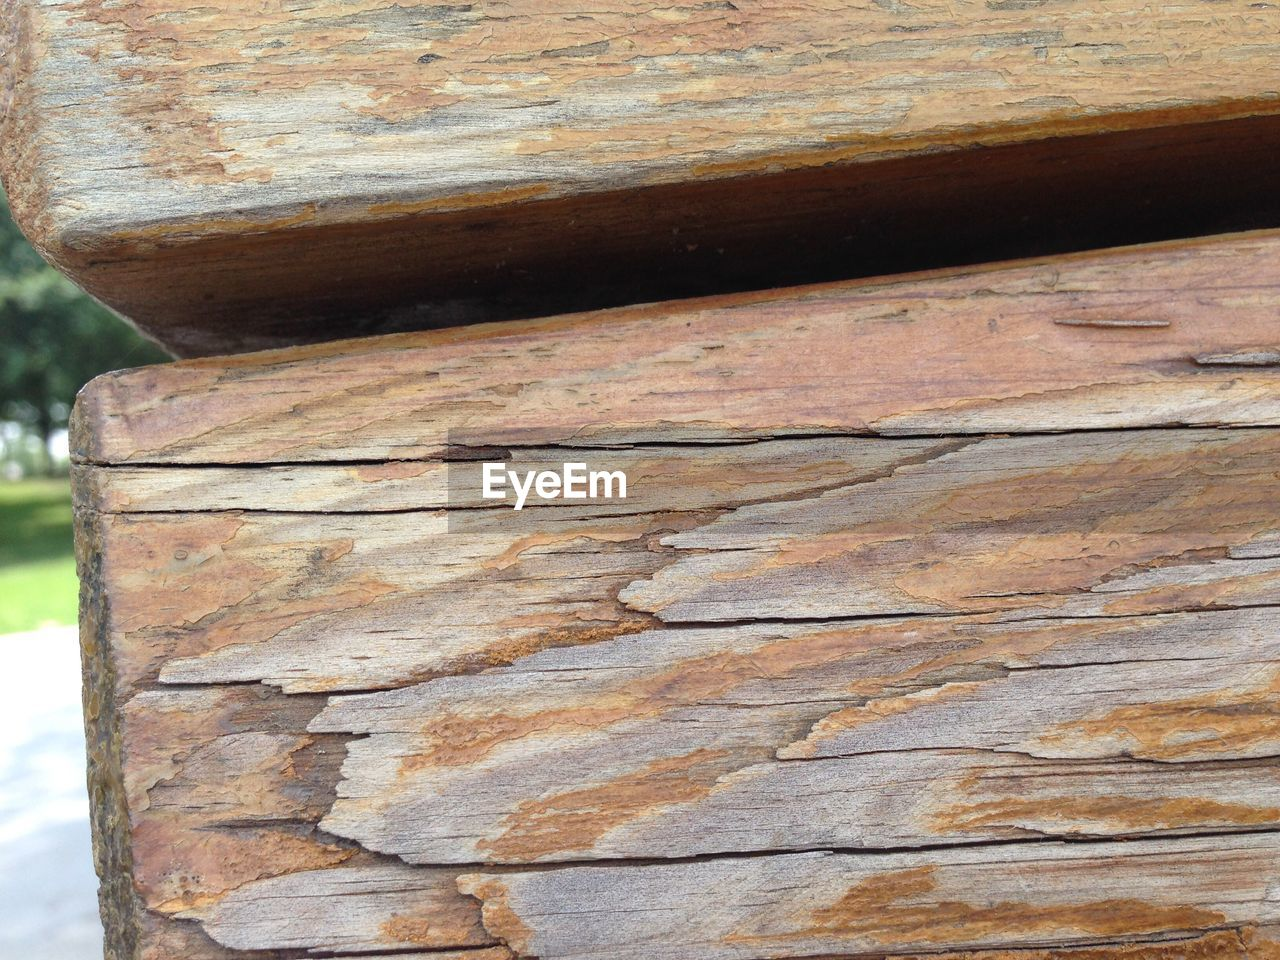 wood - material, day, textured, close-up, outdoors, no people, nature